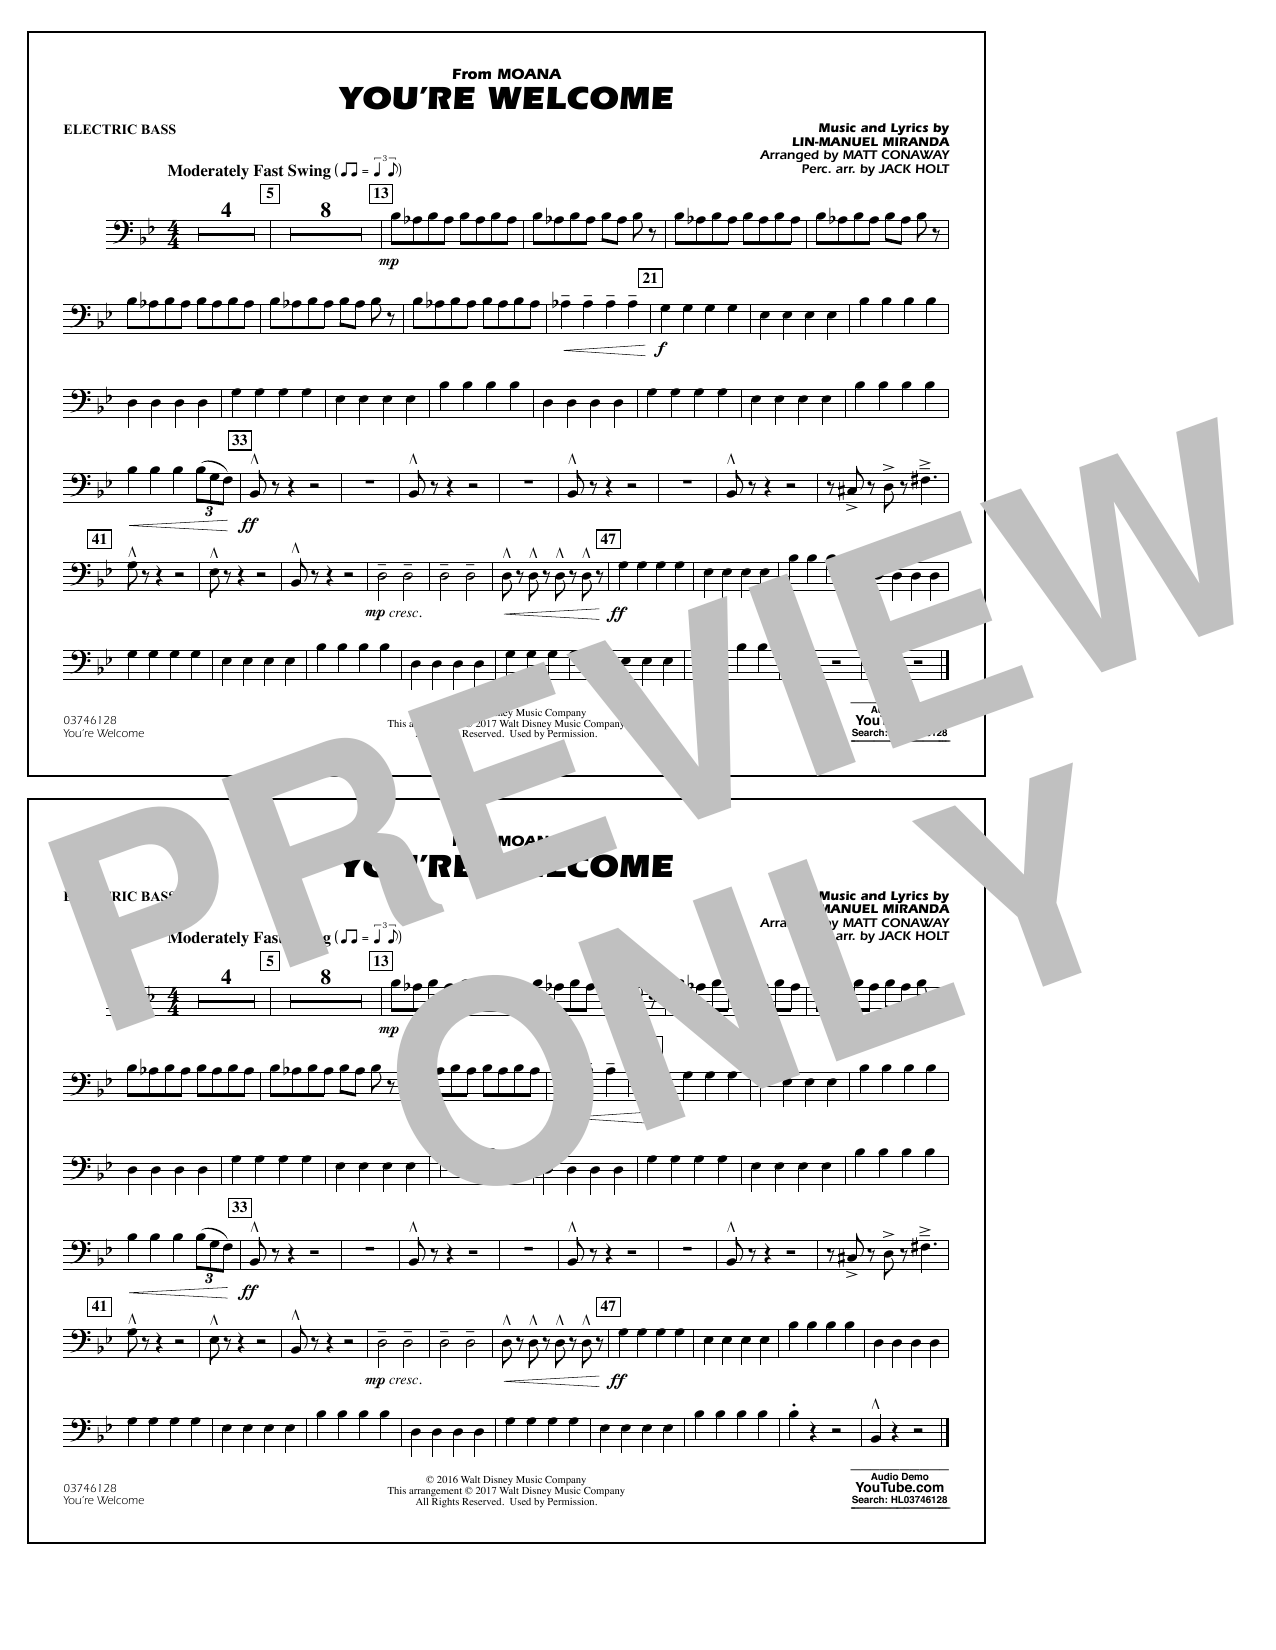 You're Welcome (from Moana) - Electric Bass Sheet Music